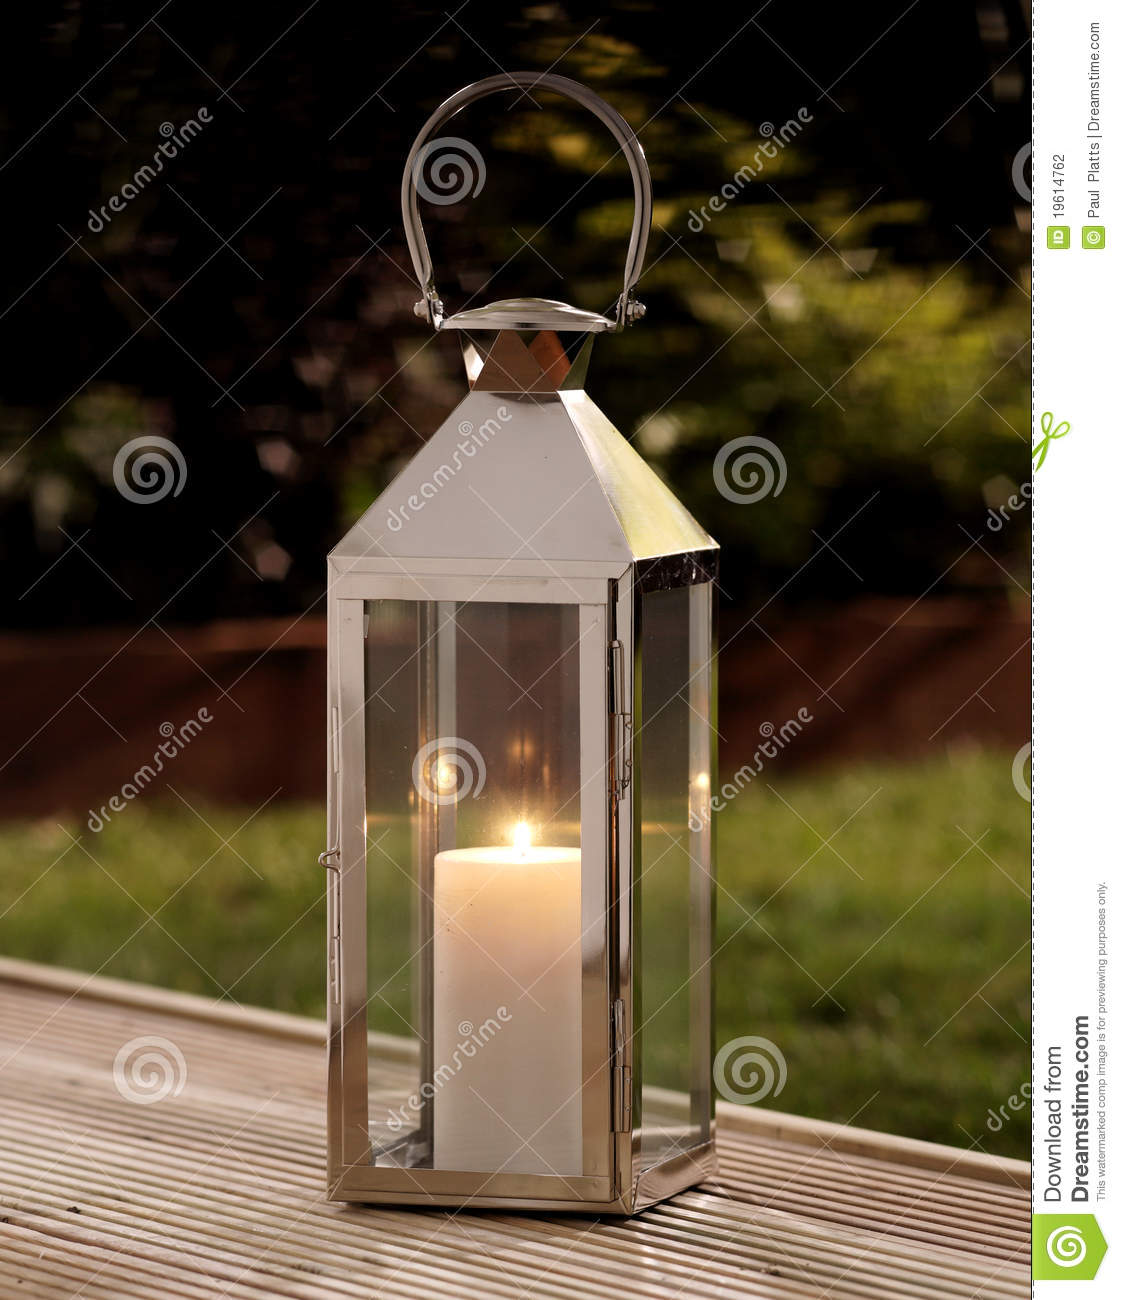 Garden Lantern Stock Photography Image 19614762